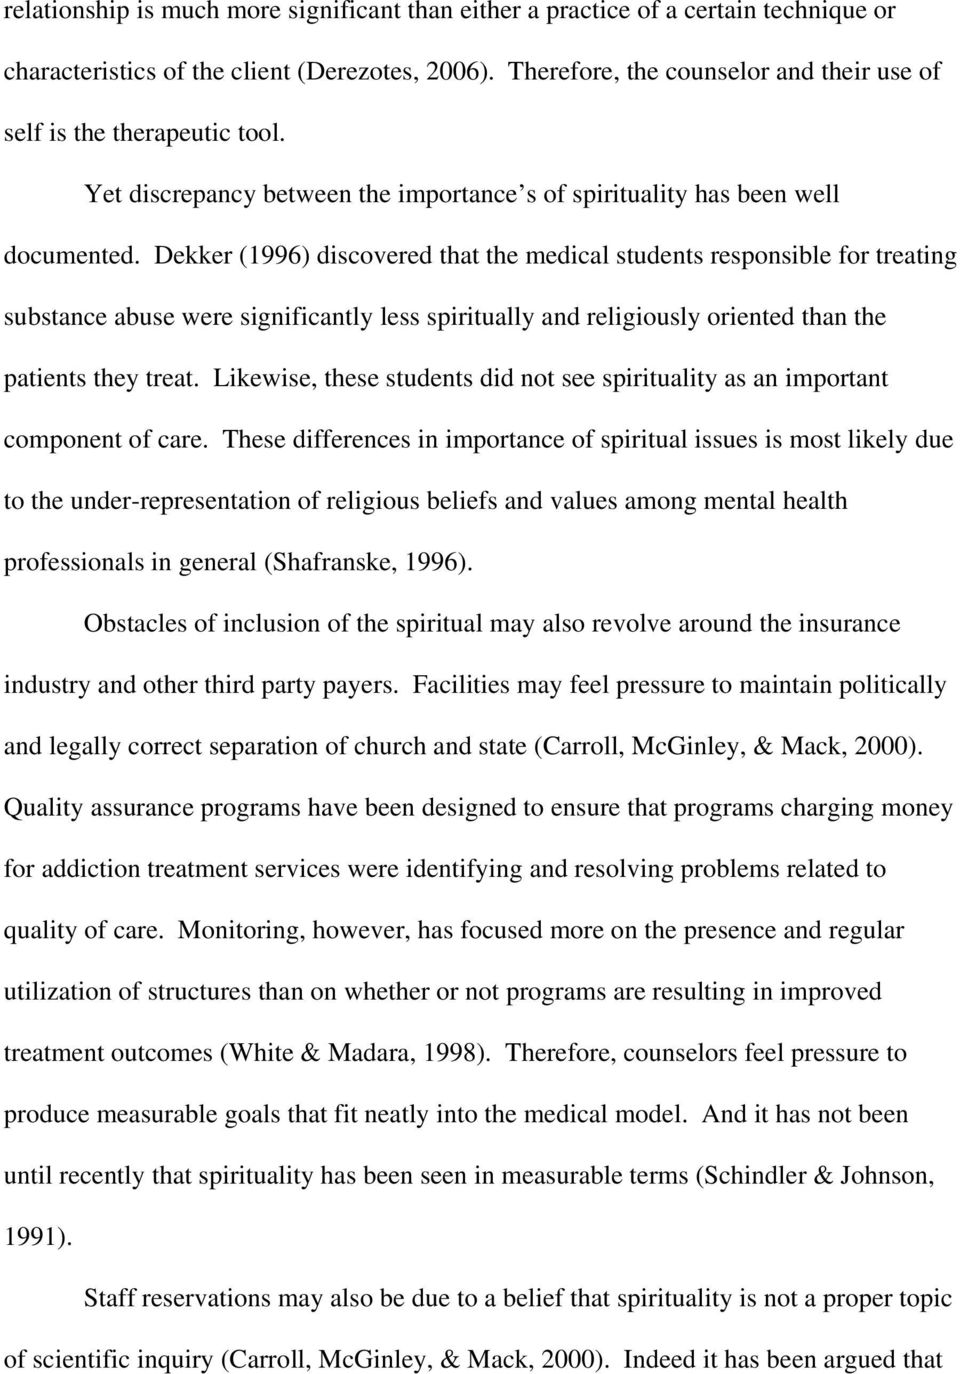 Dekker (1996) discovered that the medical students responsible for treating substance abuse were significantly less spiritually and religiously oriented than the patients they treat.